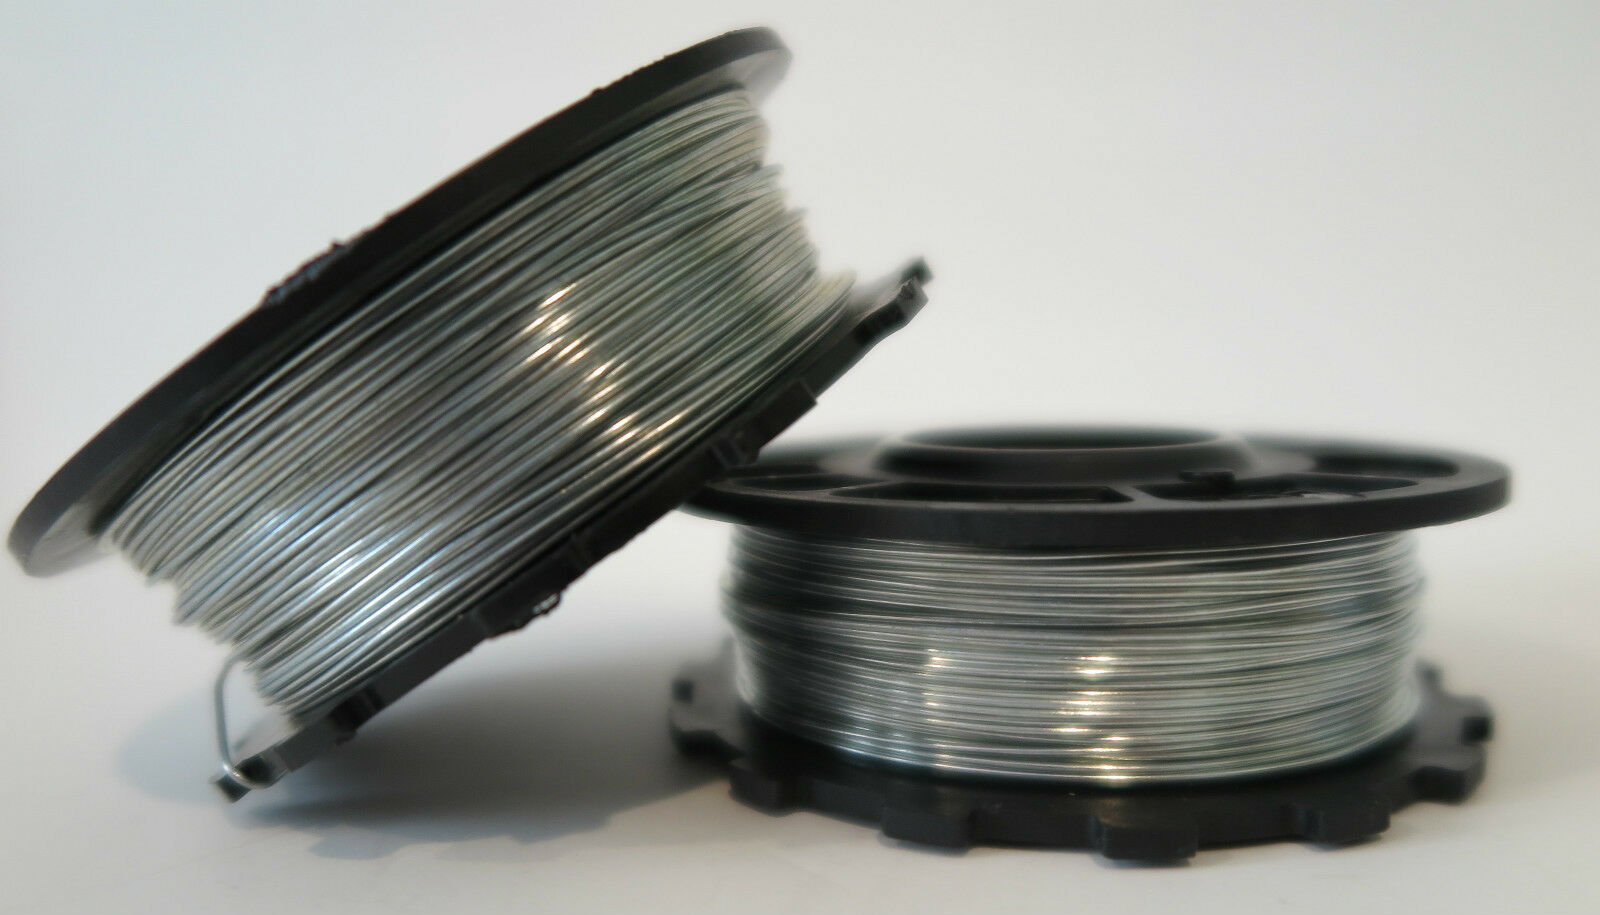 REBAR TIE WIRE compatible to MAX TW897A for RB395 RB397 - $37.95 ...